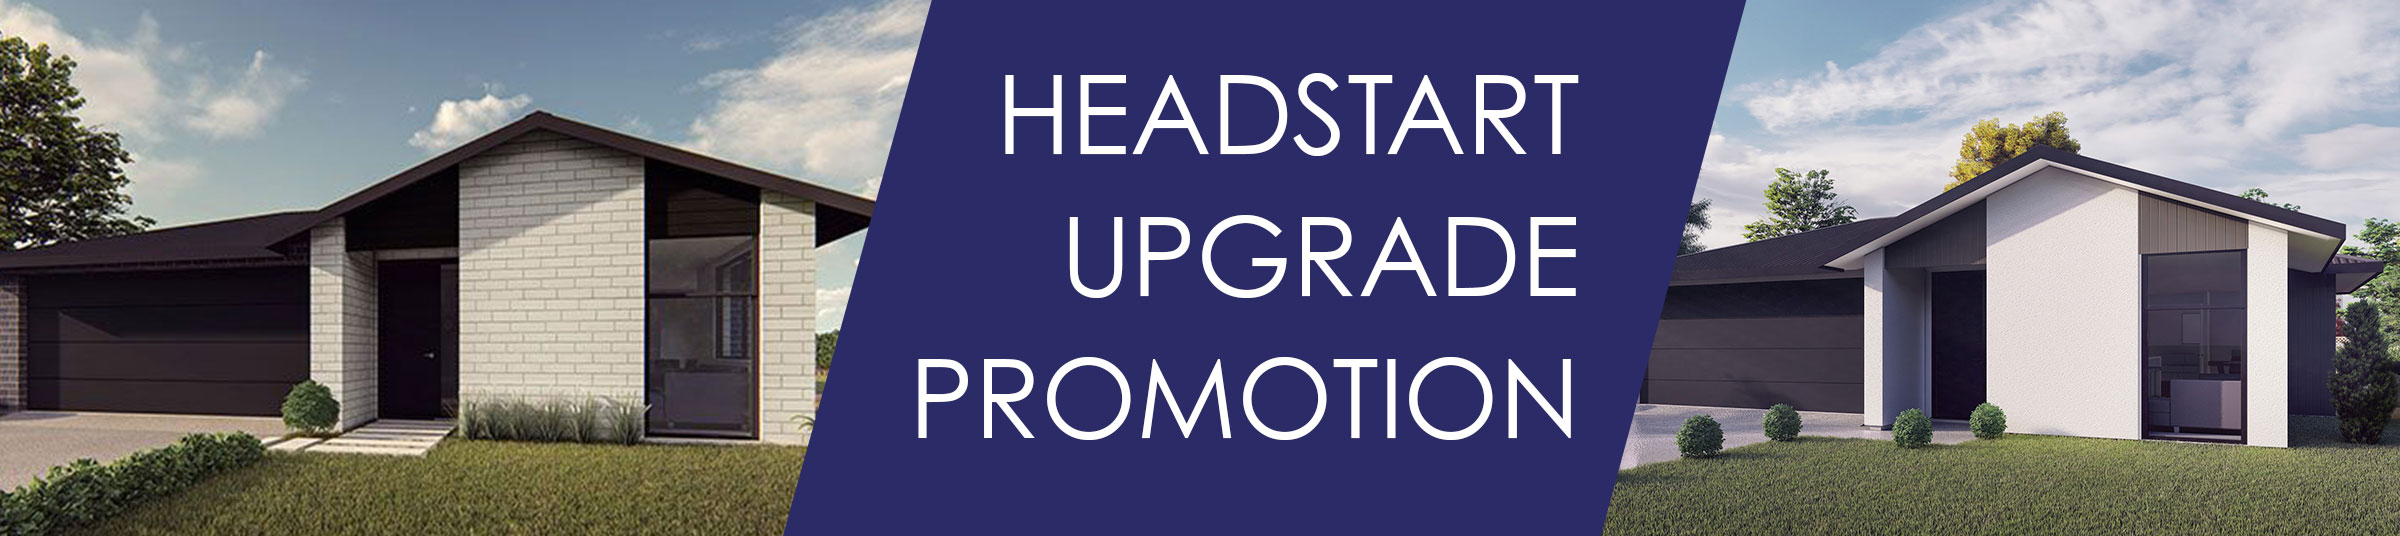 headstart promotion tandc header - Terms & Conditions